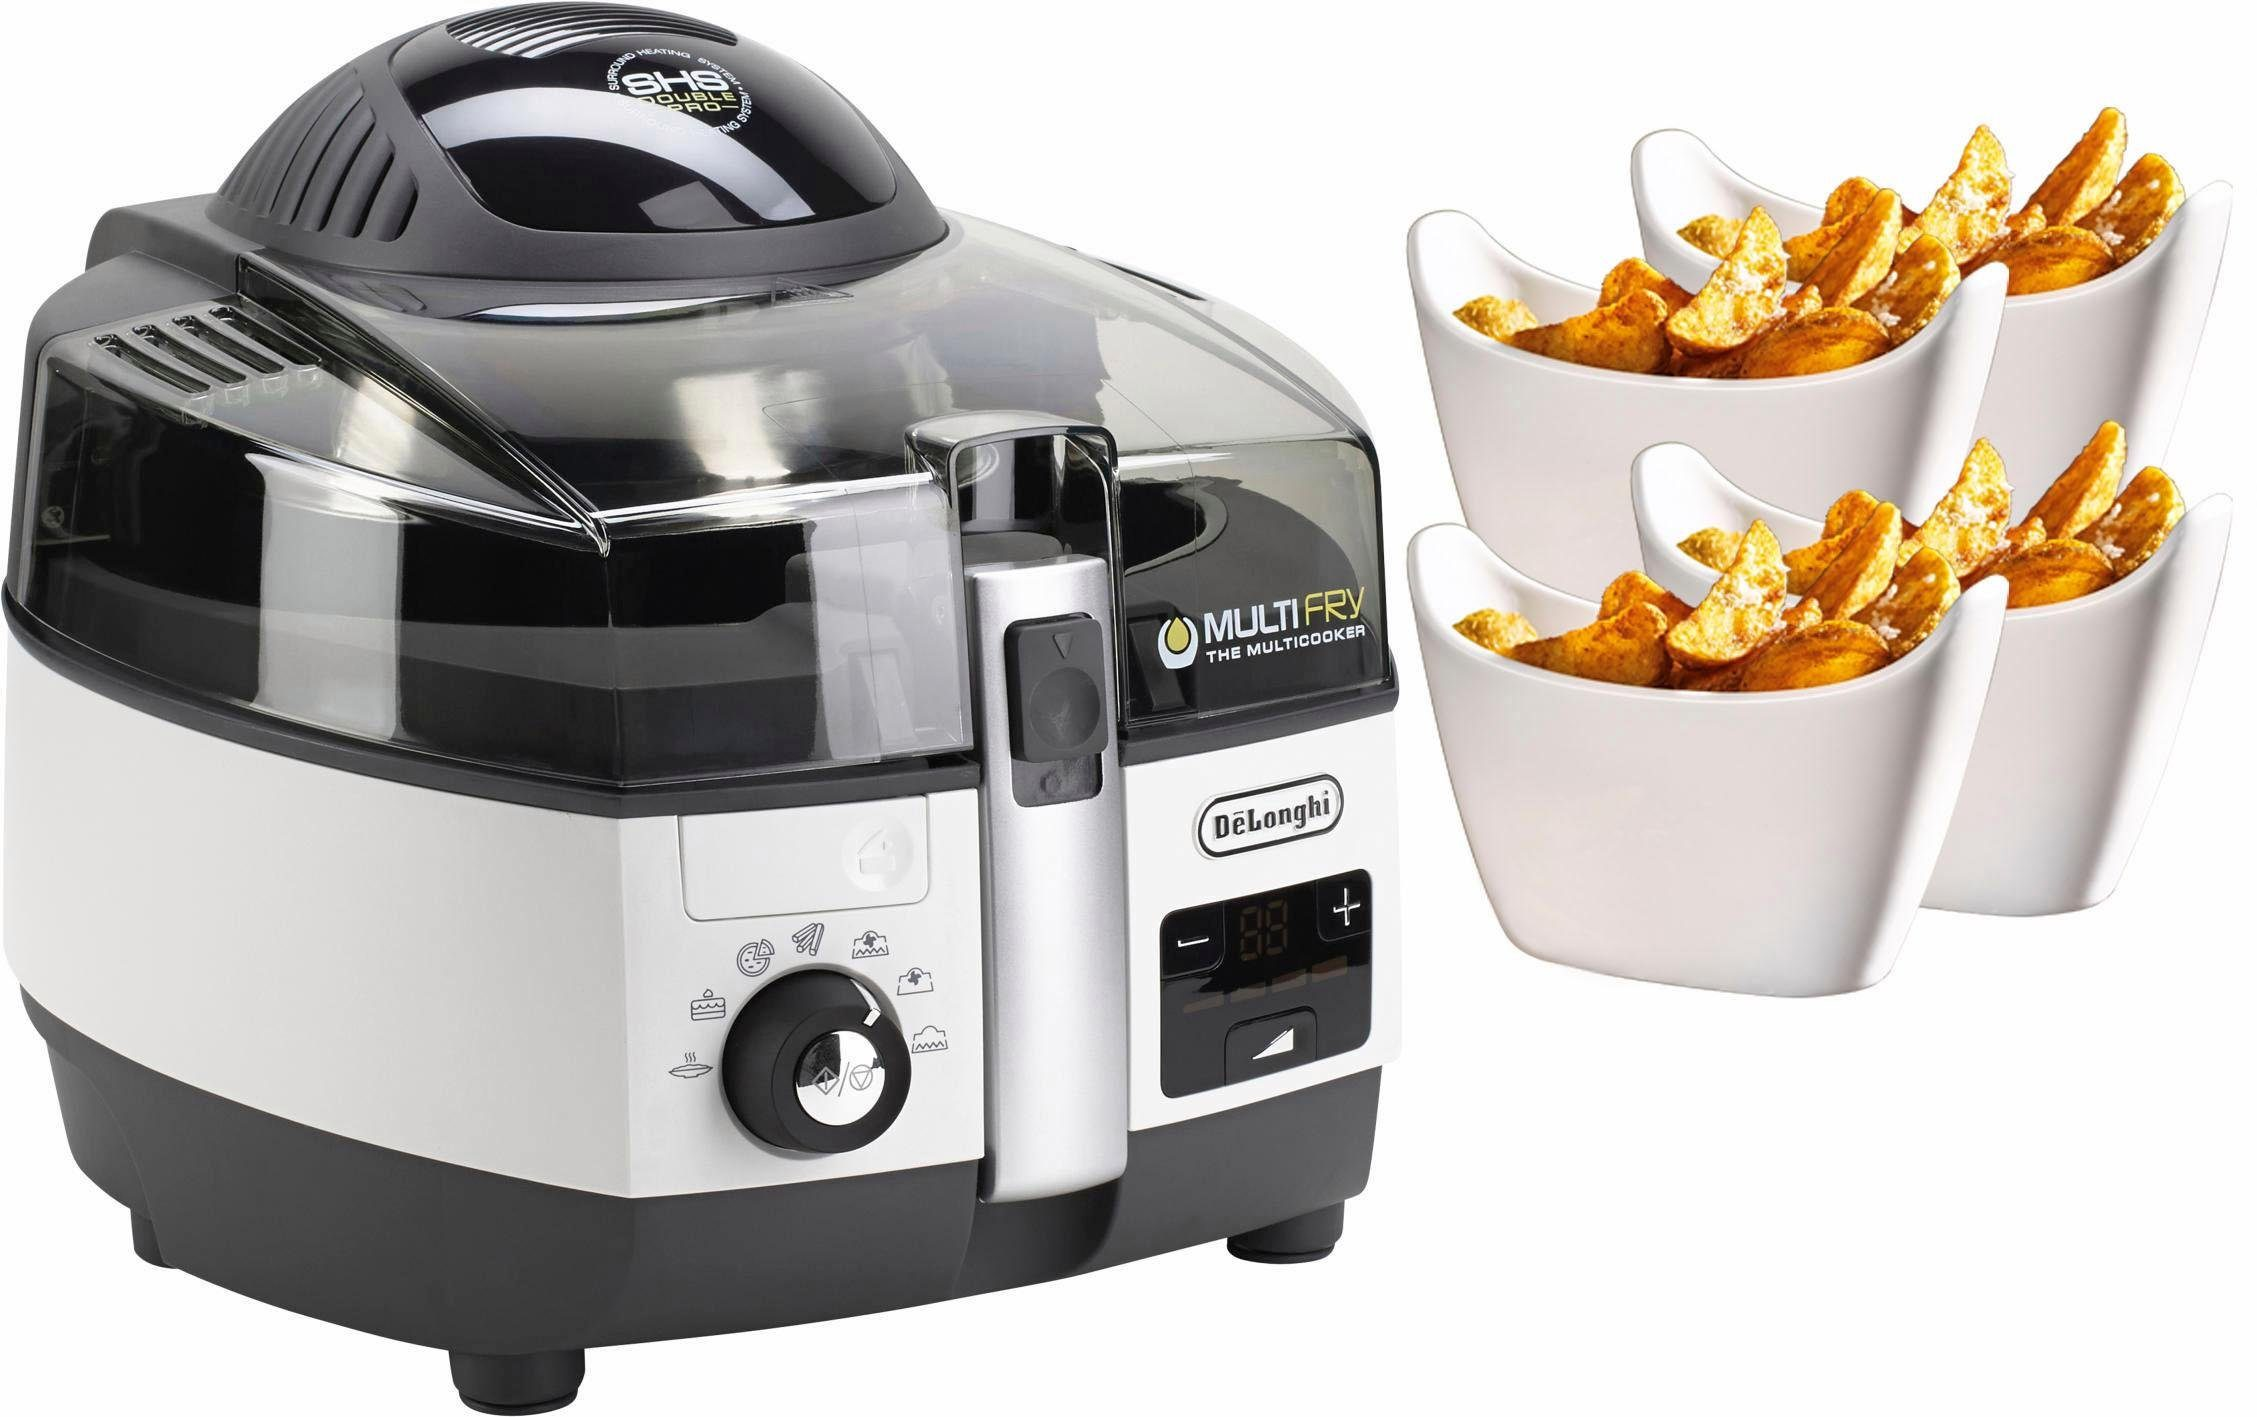 De'Longhi Heissluftfritteuse MultiFry EXTRA CHEF FH1394/1, 2300 W